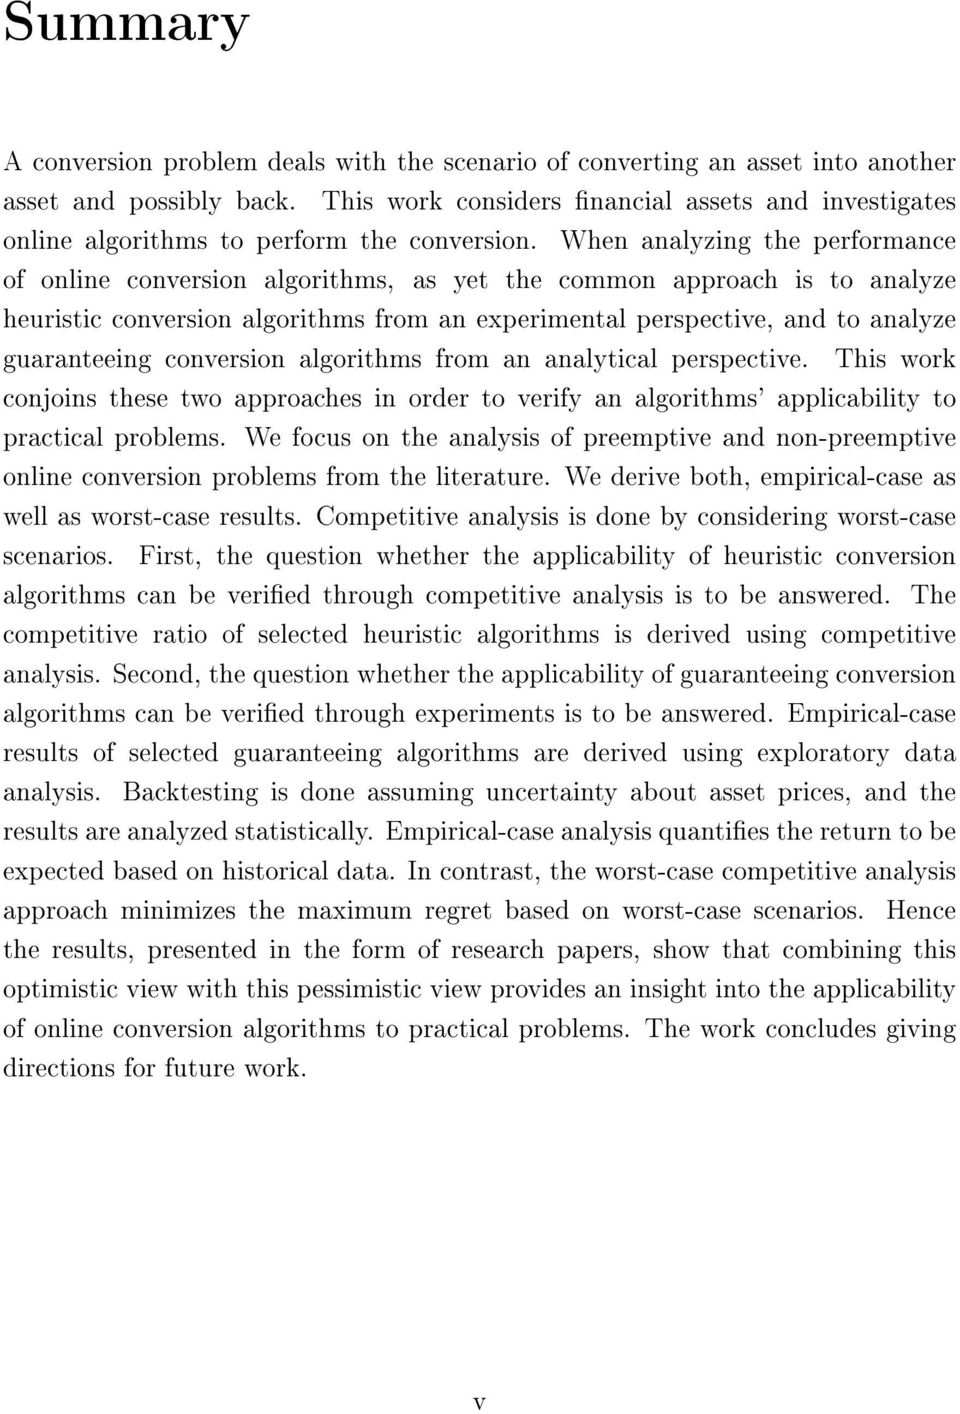 When analyzing the performance of online conversion algorithms, as yet the common approach is to analyze heuristic conversion algorithms from an experimental perspective, and to analyze guaranteeing